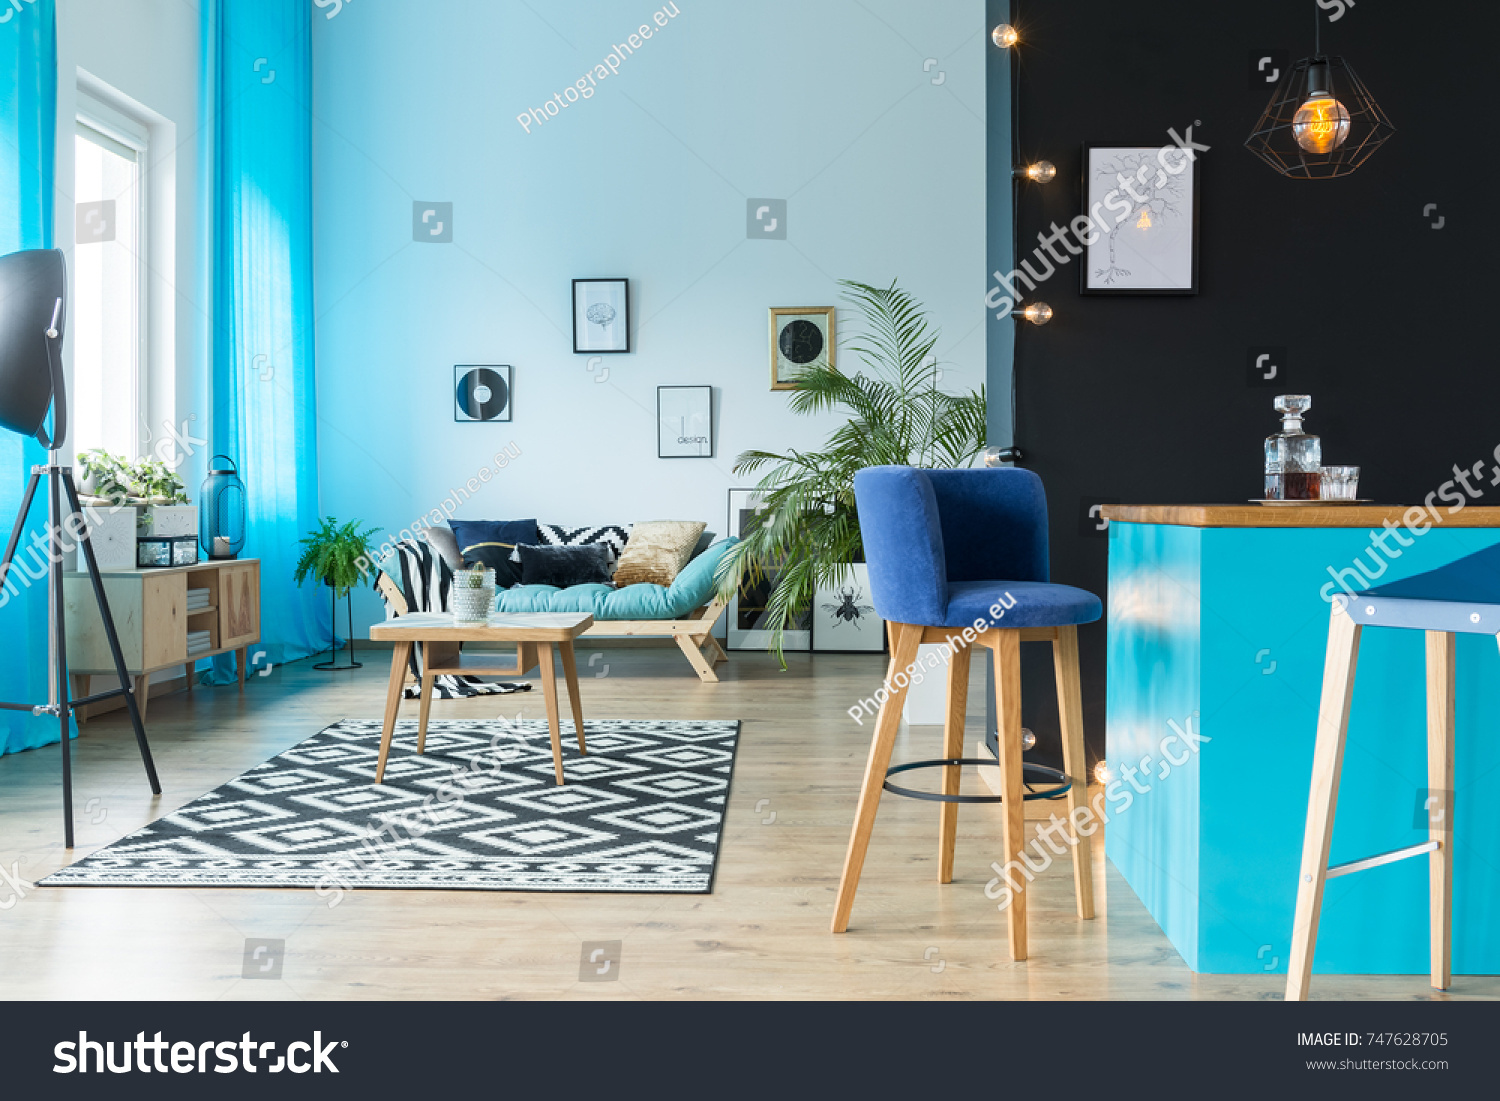 Living Room Interior Shades Blue Kitchen Stock Photo (Royalty Free ...